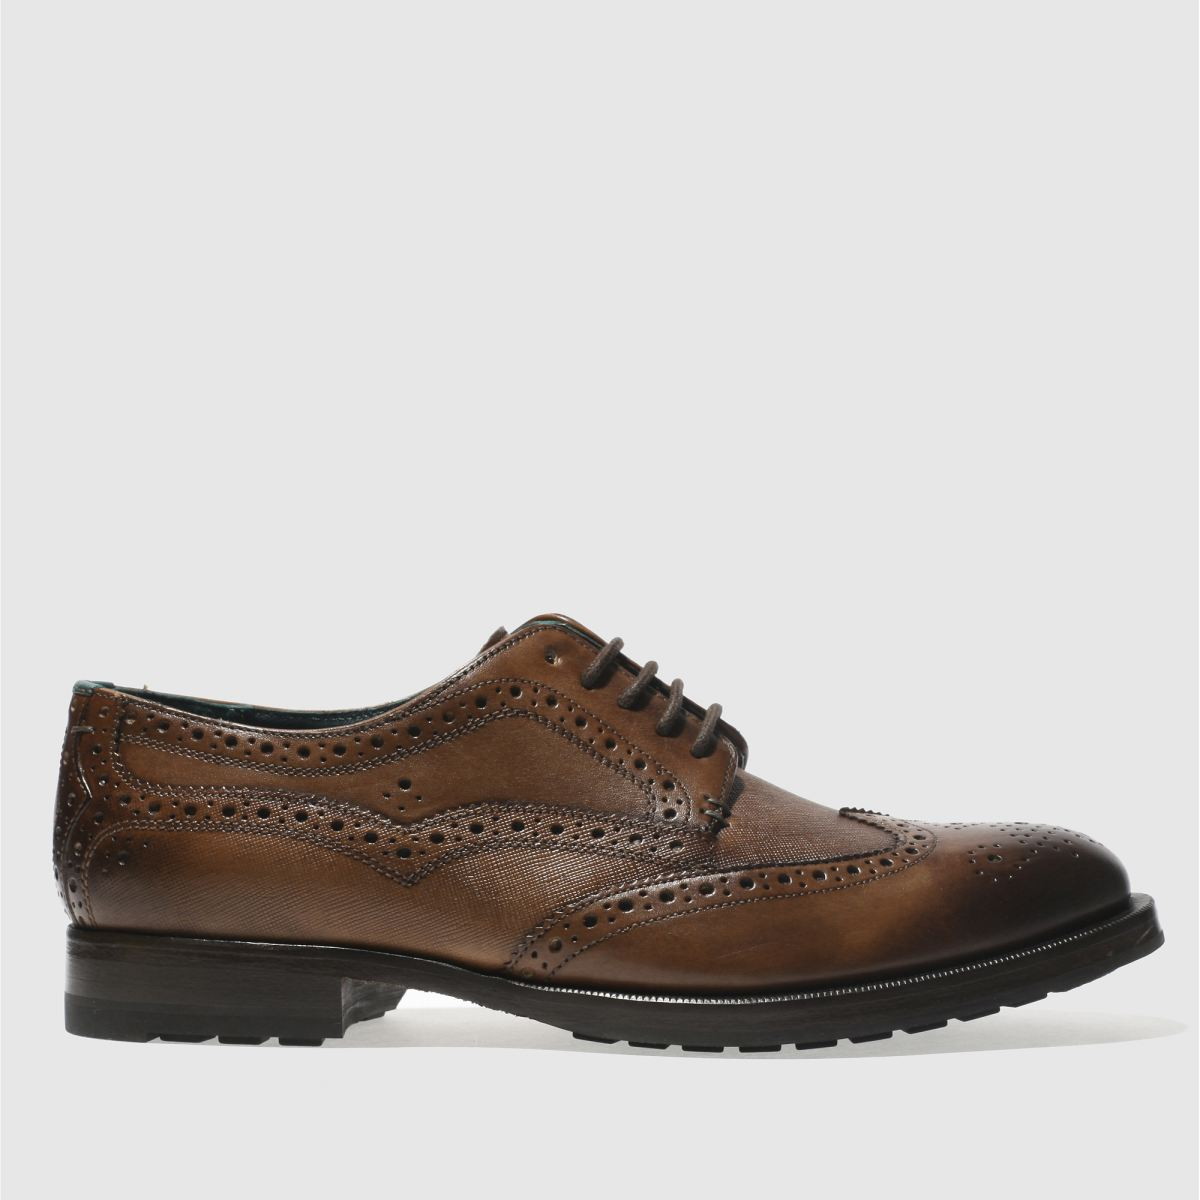 Ted Baker Tan Senape Shoes